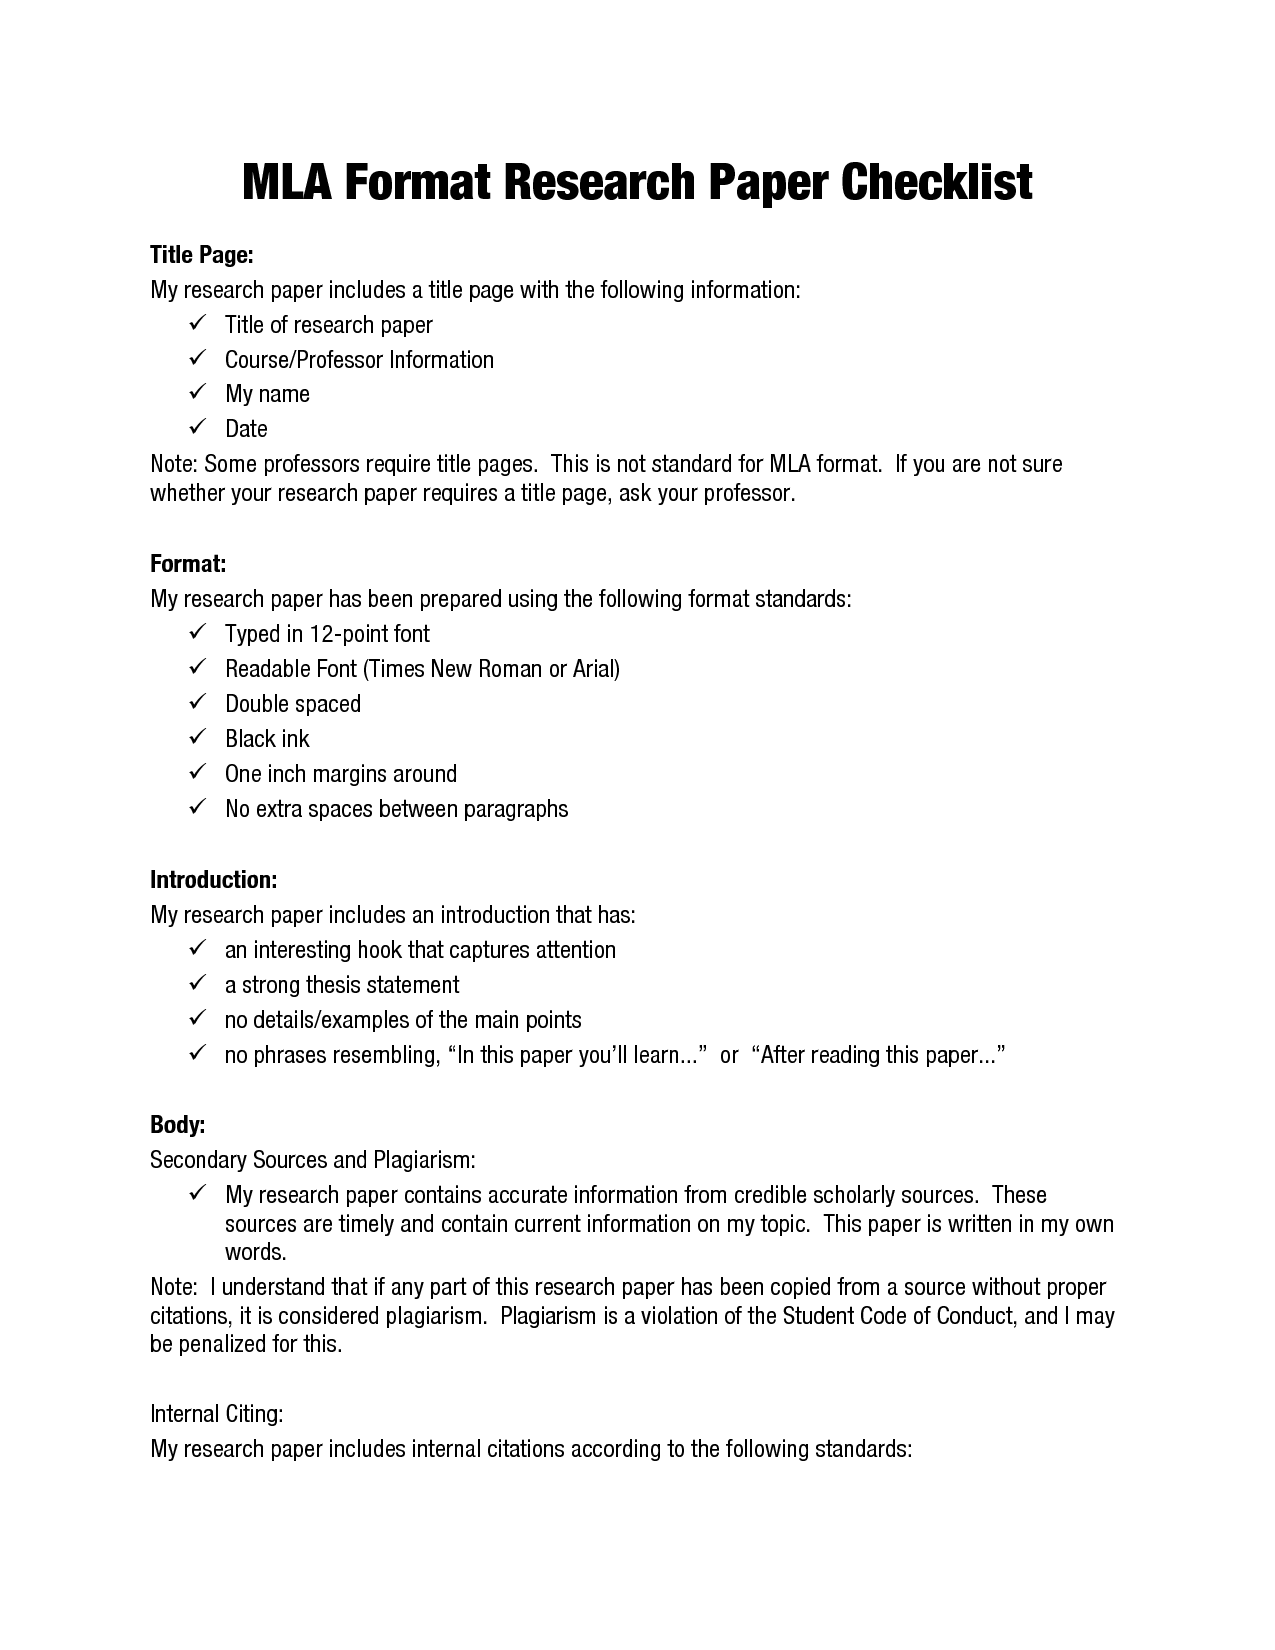 research essay ideas formatting a research paper how not to  how not to plagiarize in a research paper how not to plagiarize best ideas about research essay proposal outline